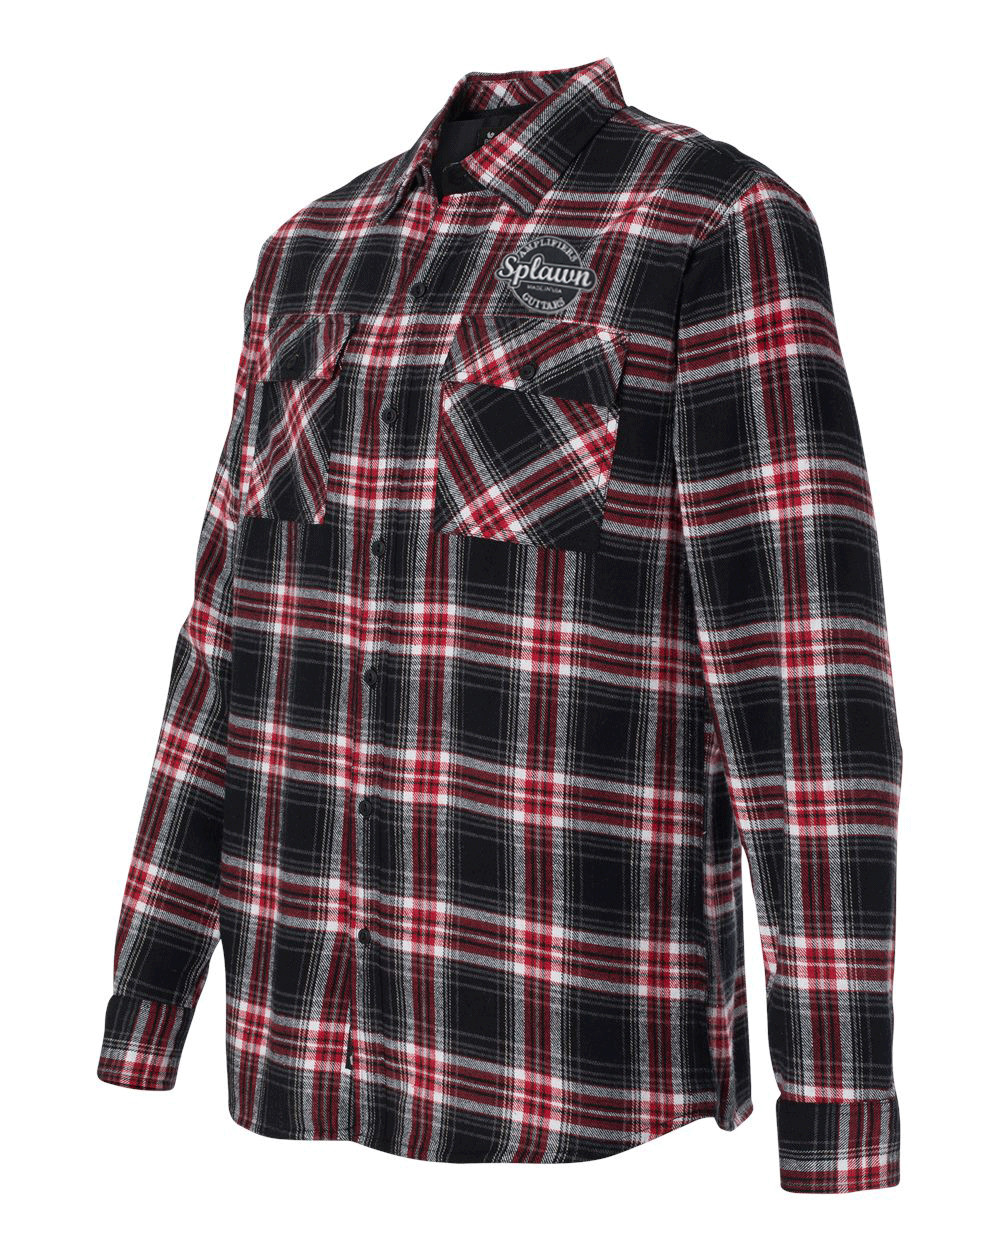 Splawn Amplification Logo Red BURNSIDE Flannel Long Sleeve Shirt